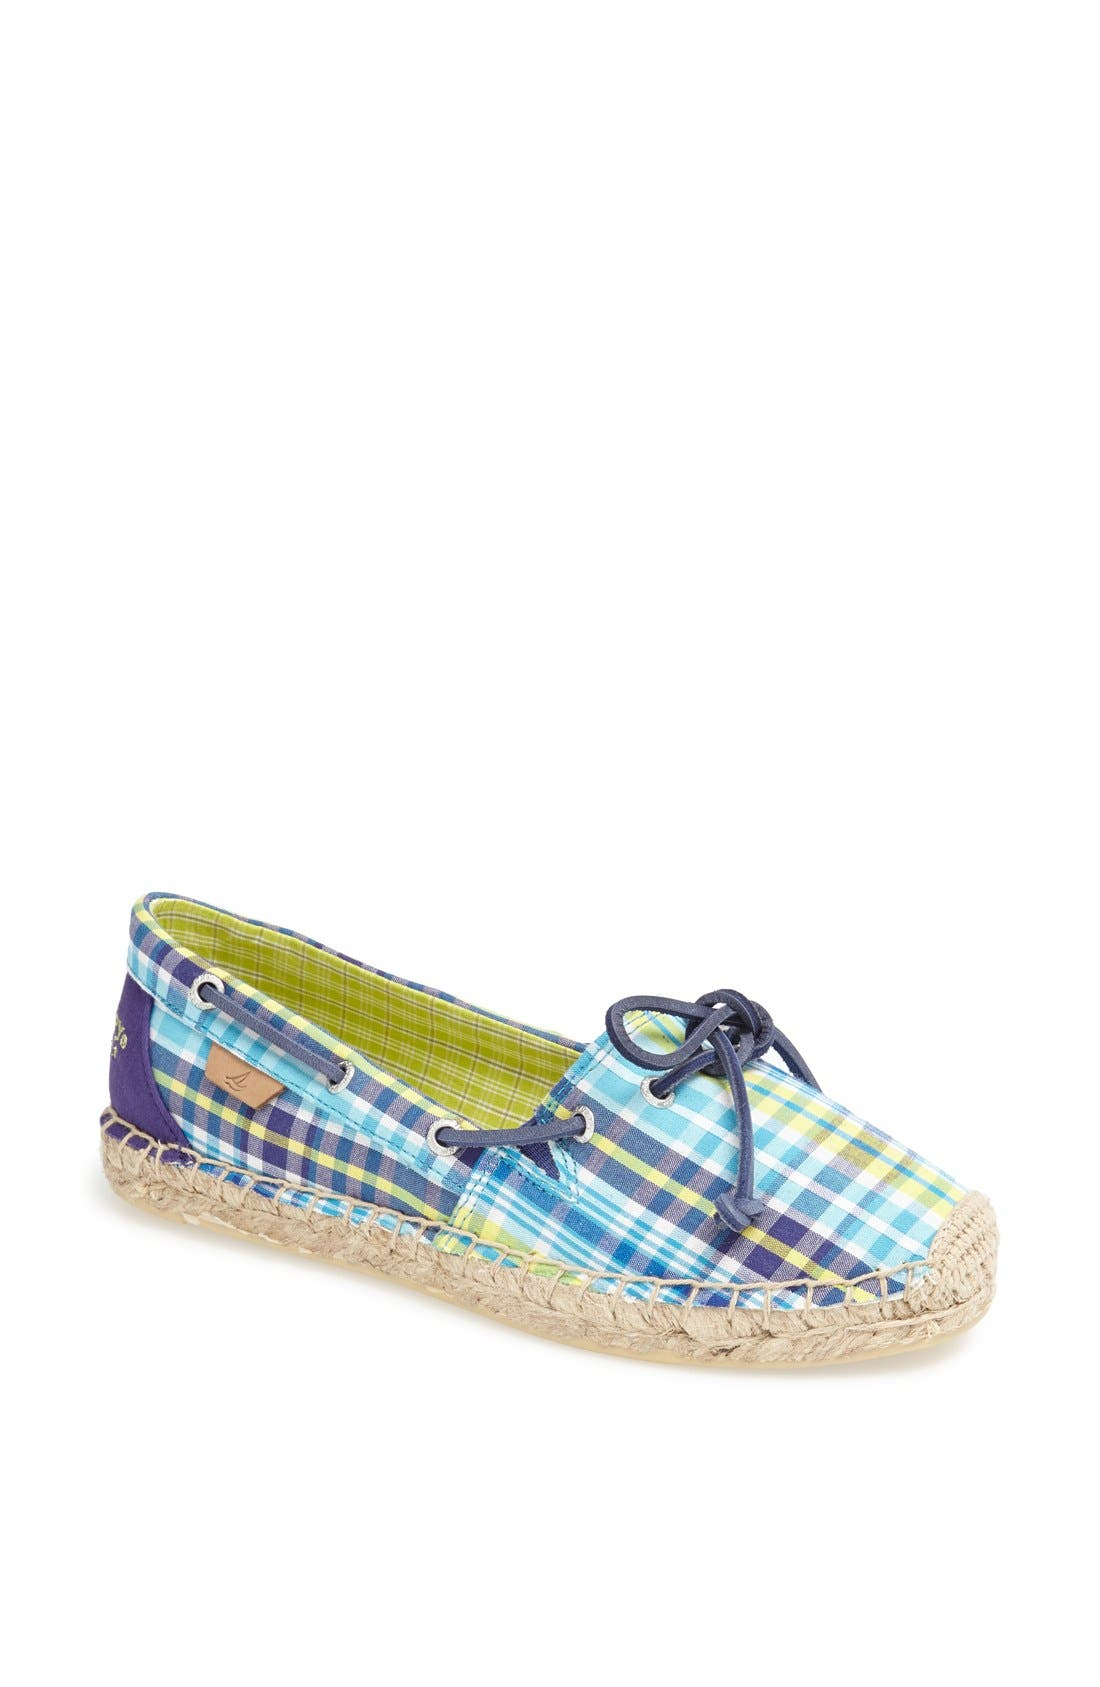 Main Image - Sperry Top-Sider® 'Katama' Flat